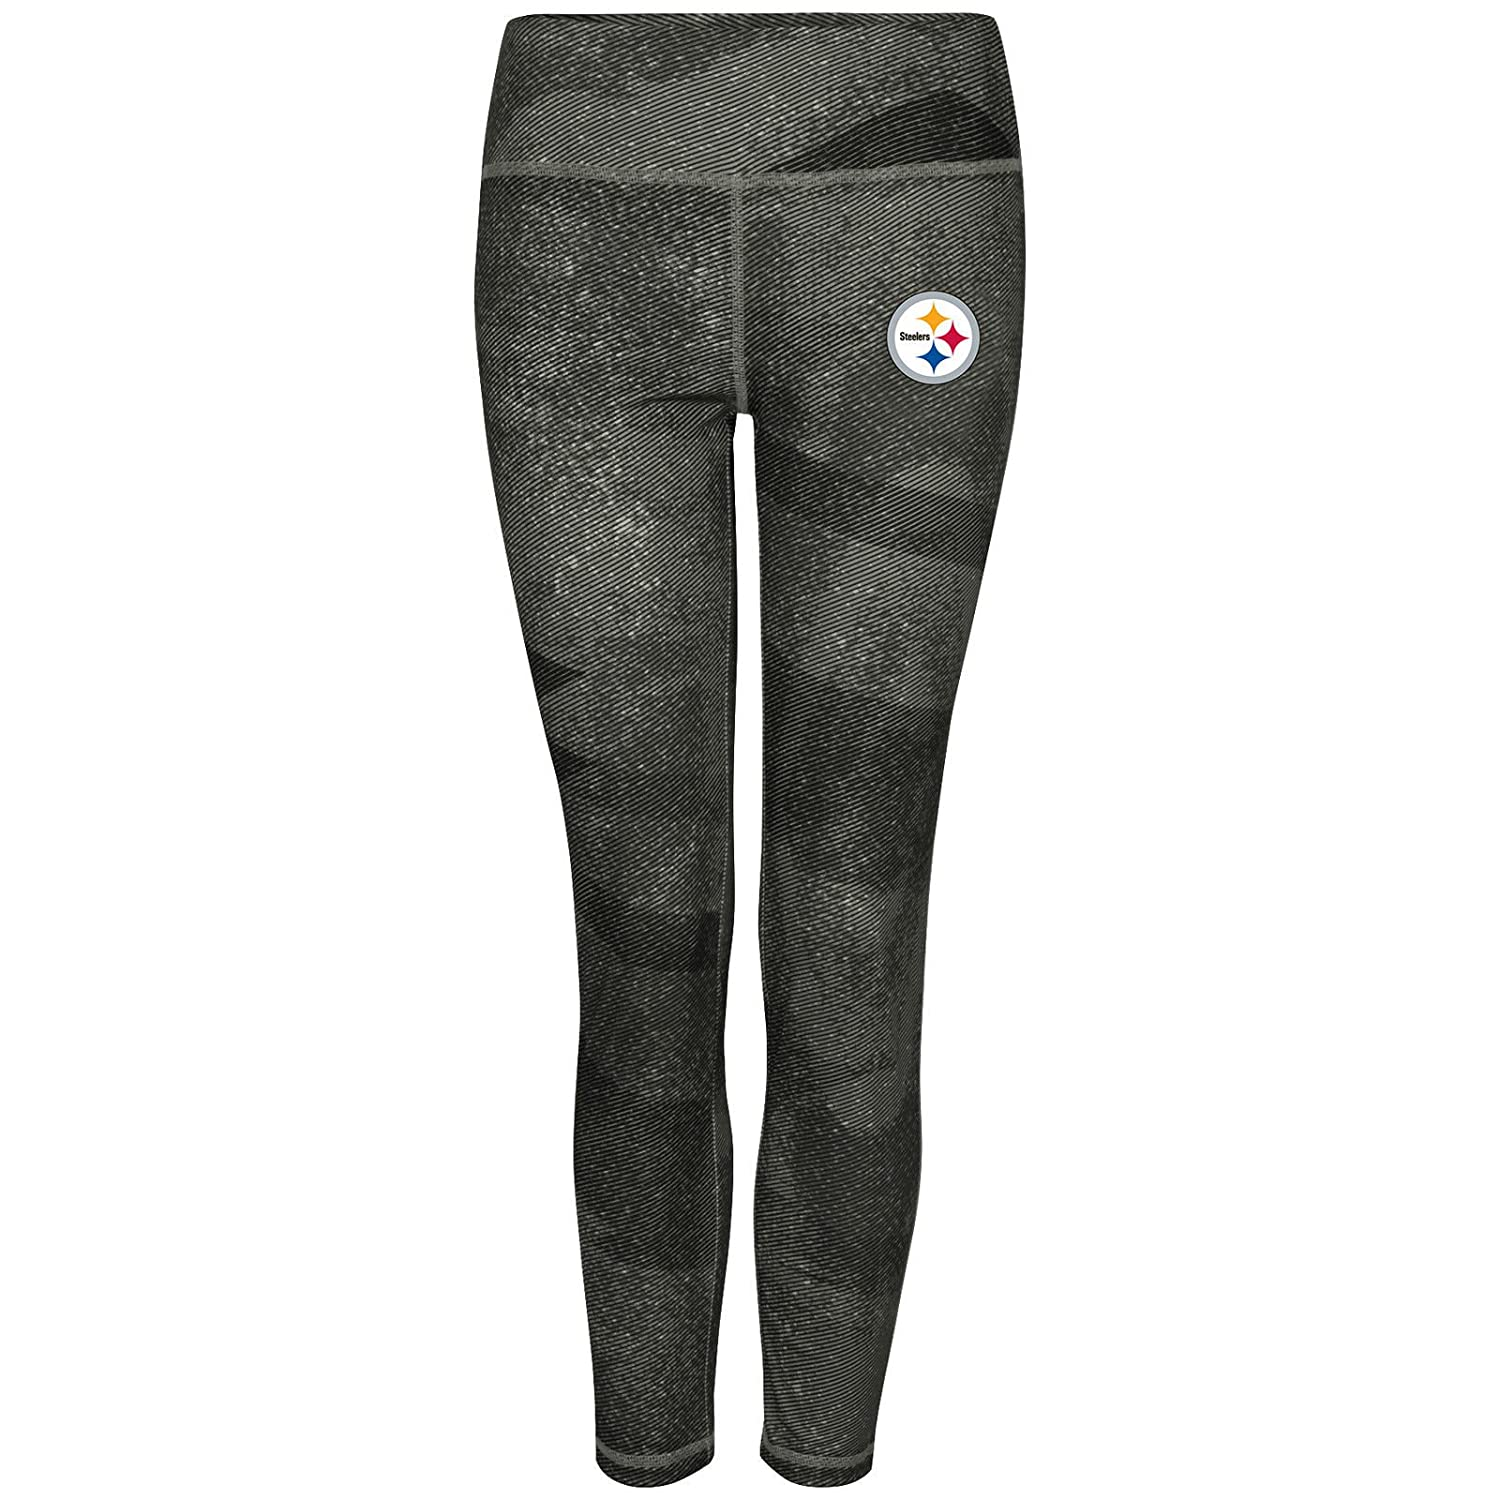 Pittsburgh Steelers Women 's Majestic NFLダイナミックeffort」レギンスヨガパンツ   B01DF7B2E2